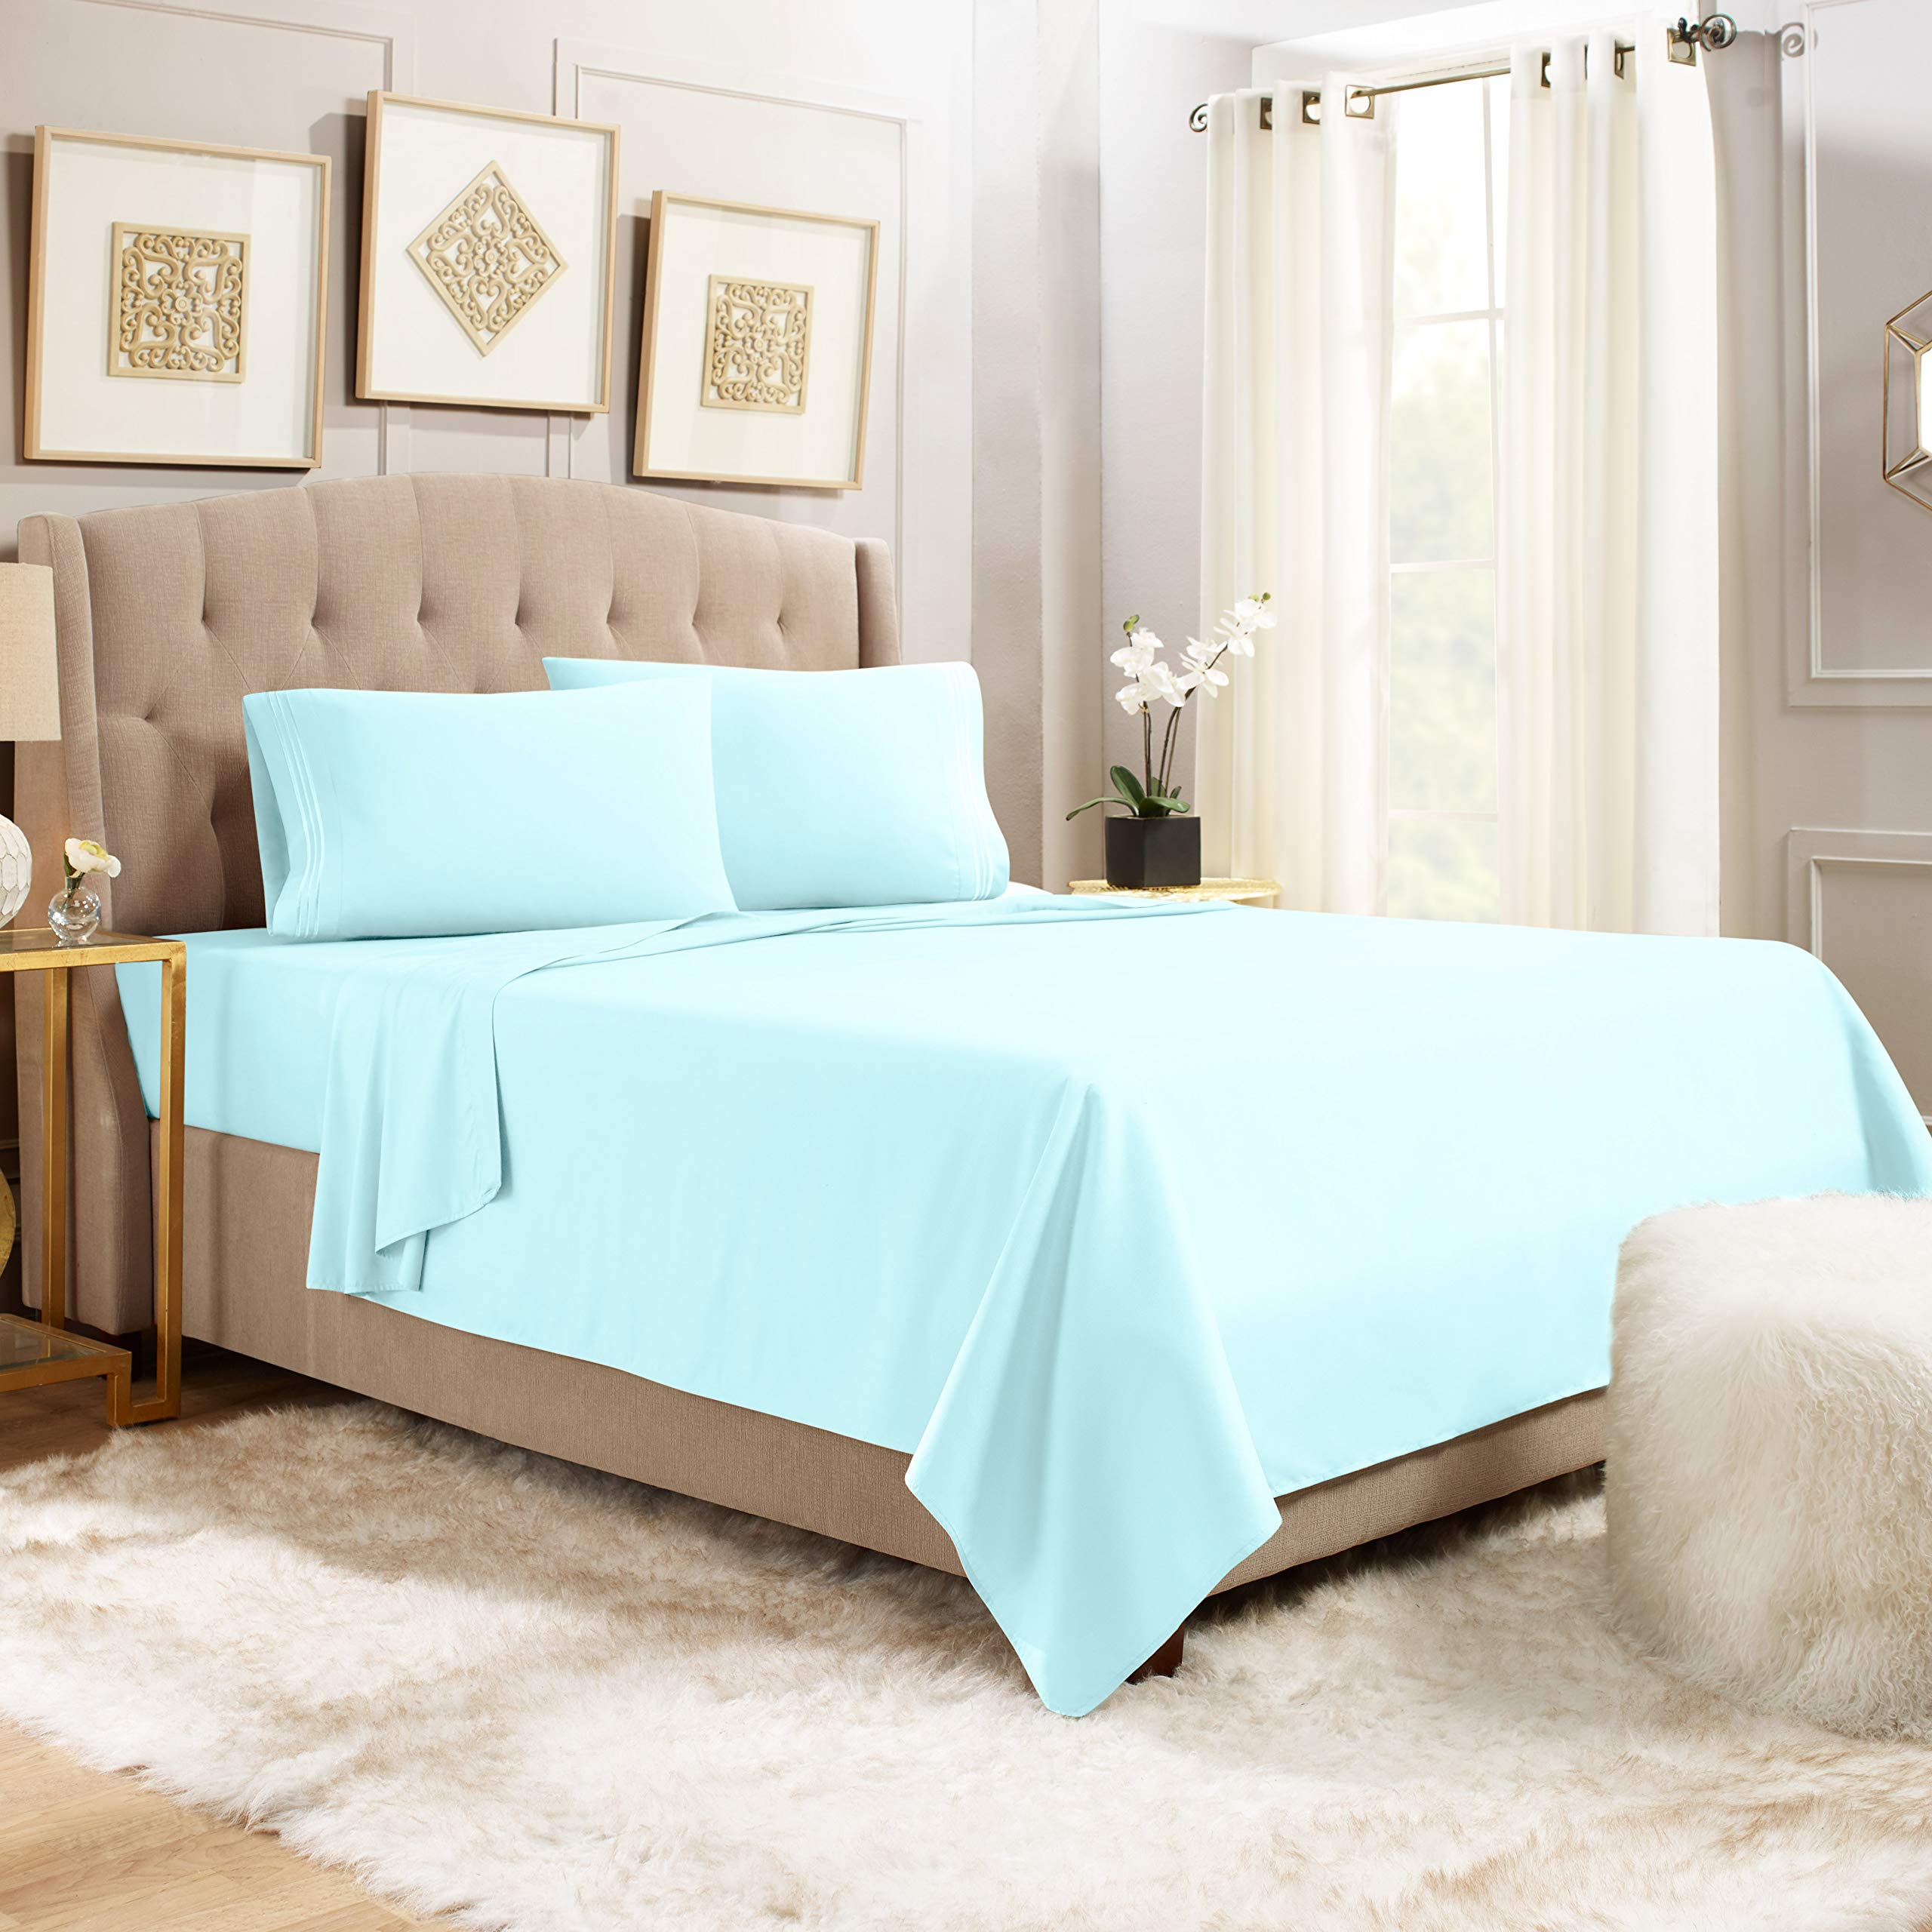 """Empyrean Bedding 14"""" - 16"""" Deep Pocket Fitted Sheet 4 Piece Set - Super Soft Double Brushed Microfiber Top Sheet - Wrinkle Free Fitted Bed Sheet, Flat Sheet and 2 Pillow Cases - King, Light Blue"""